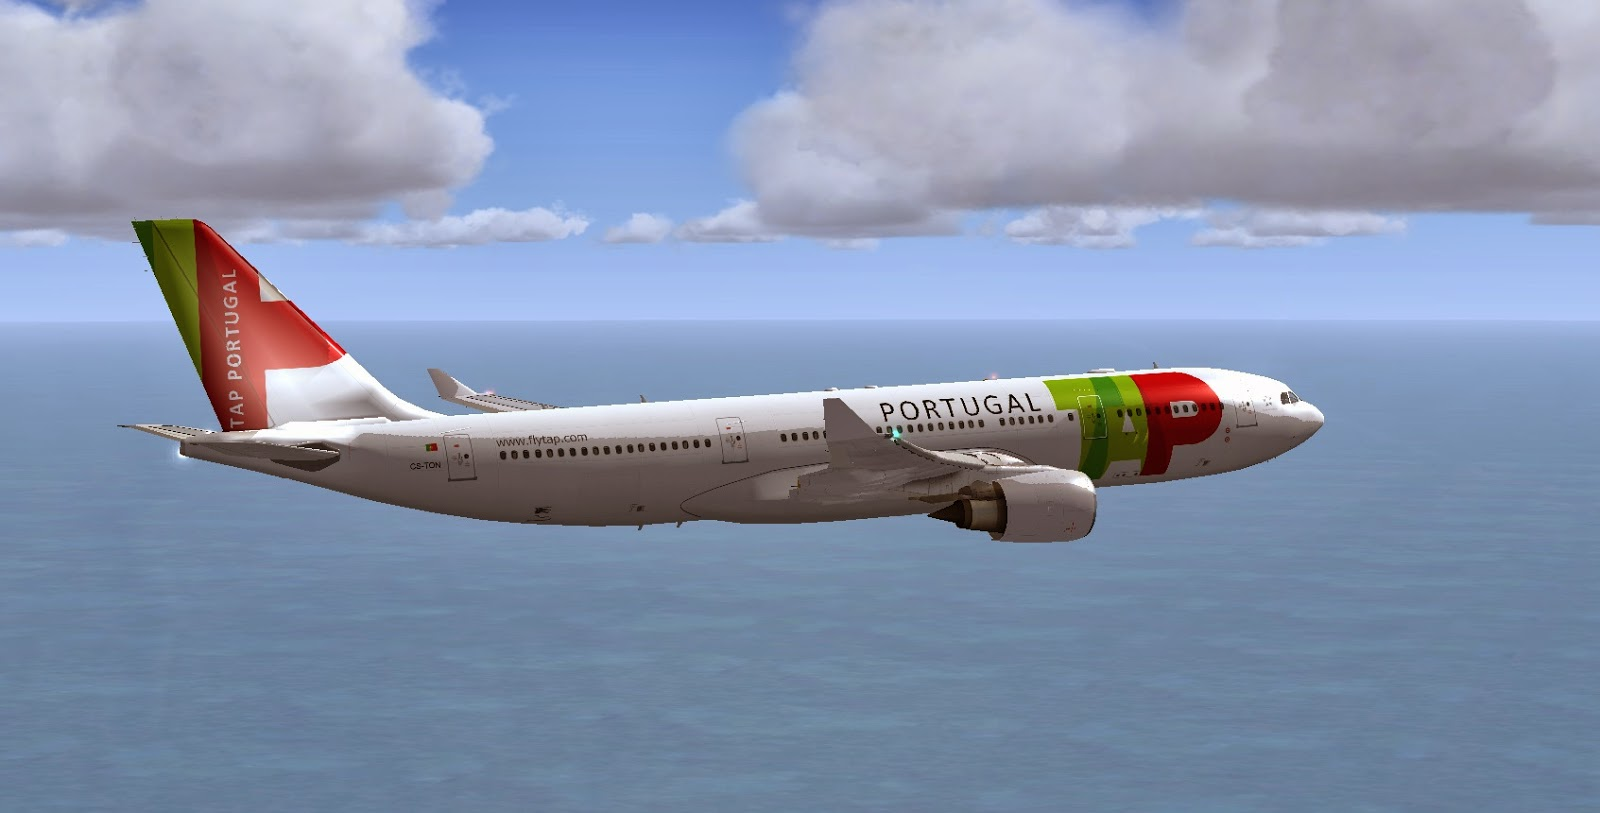 A330 tap fsx download free